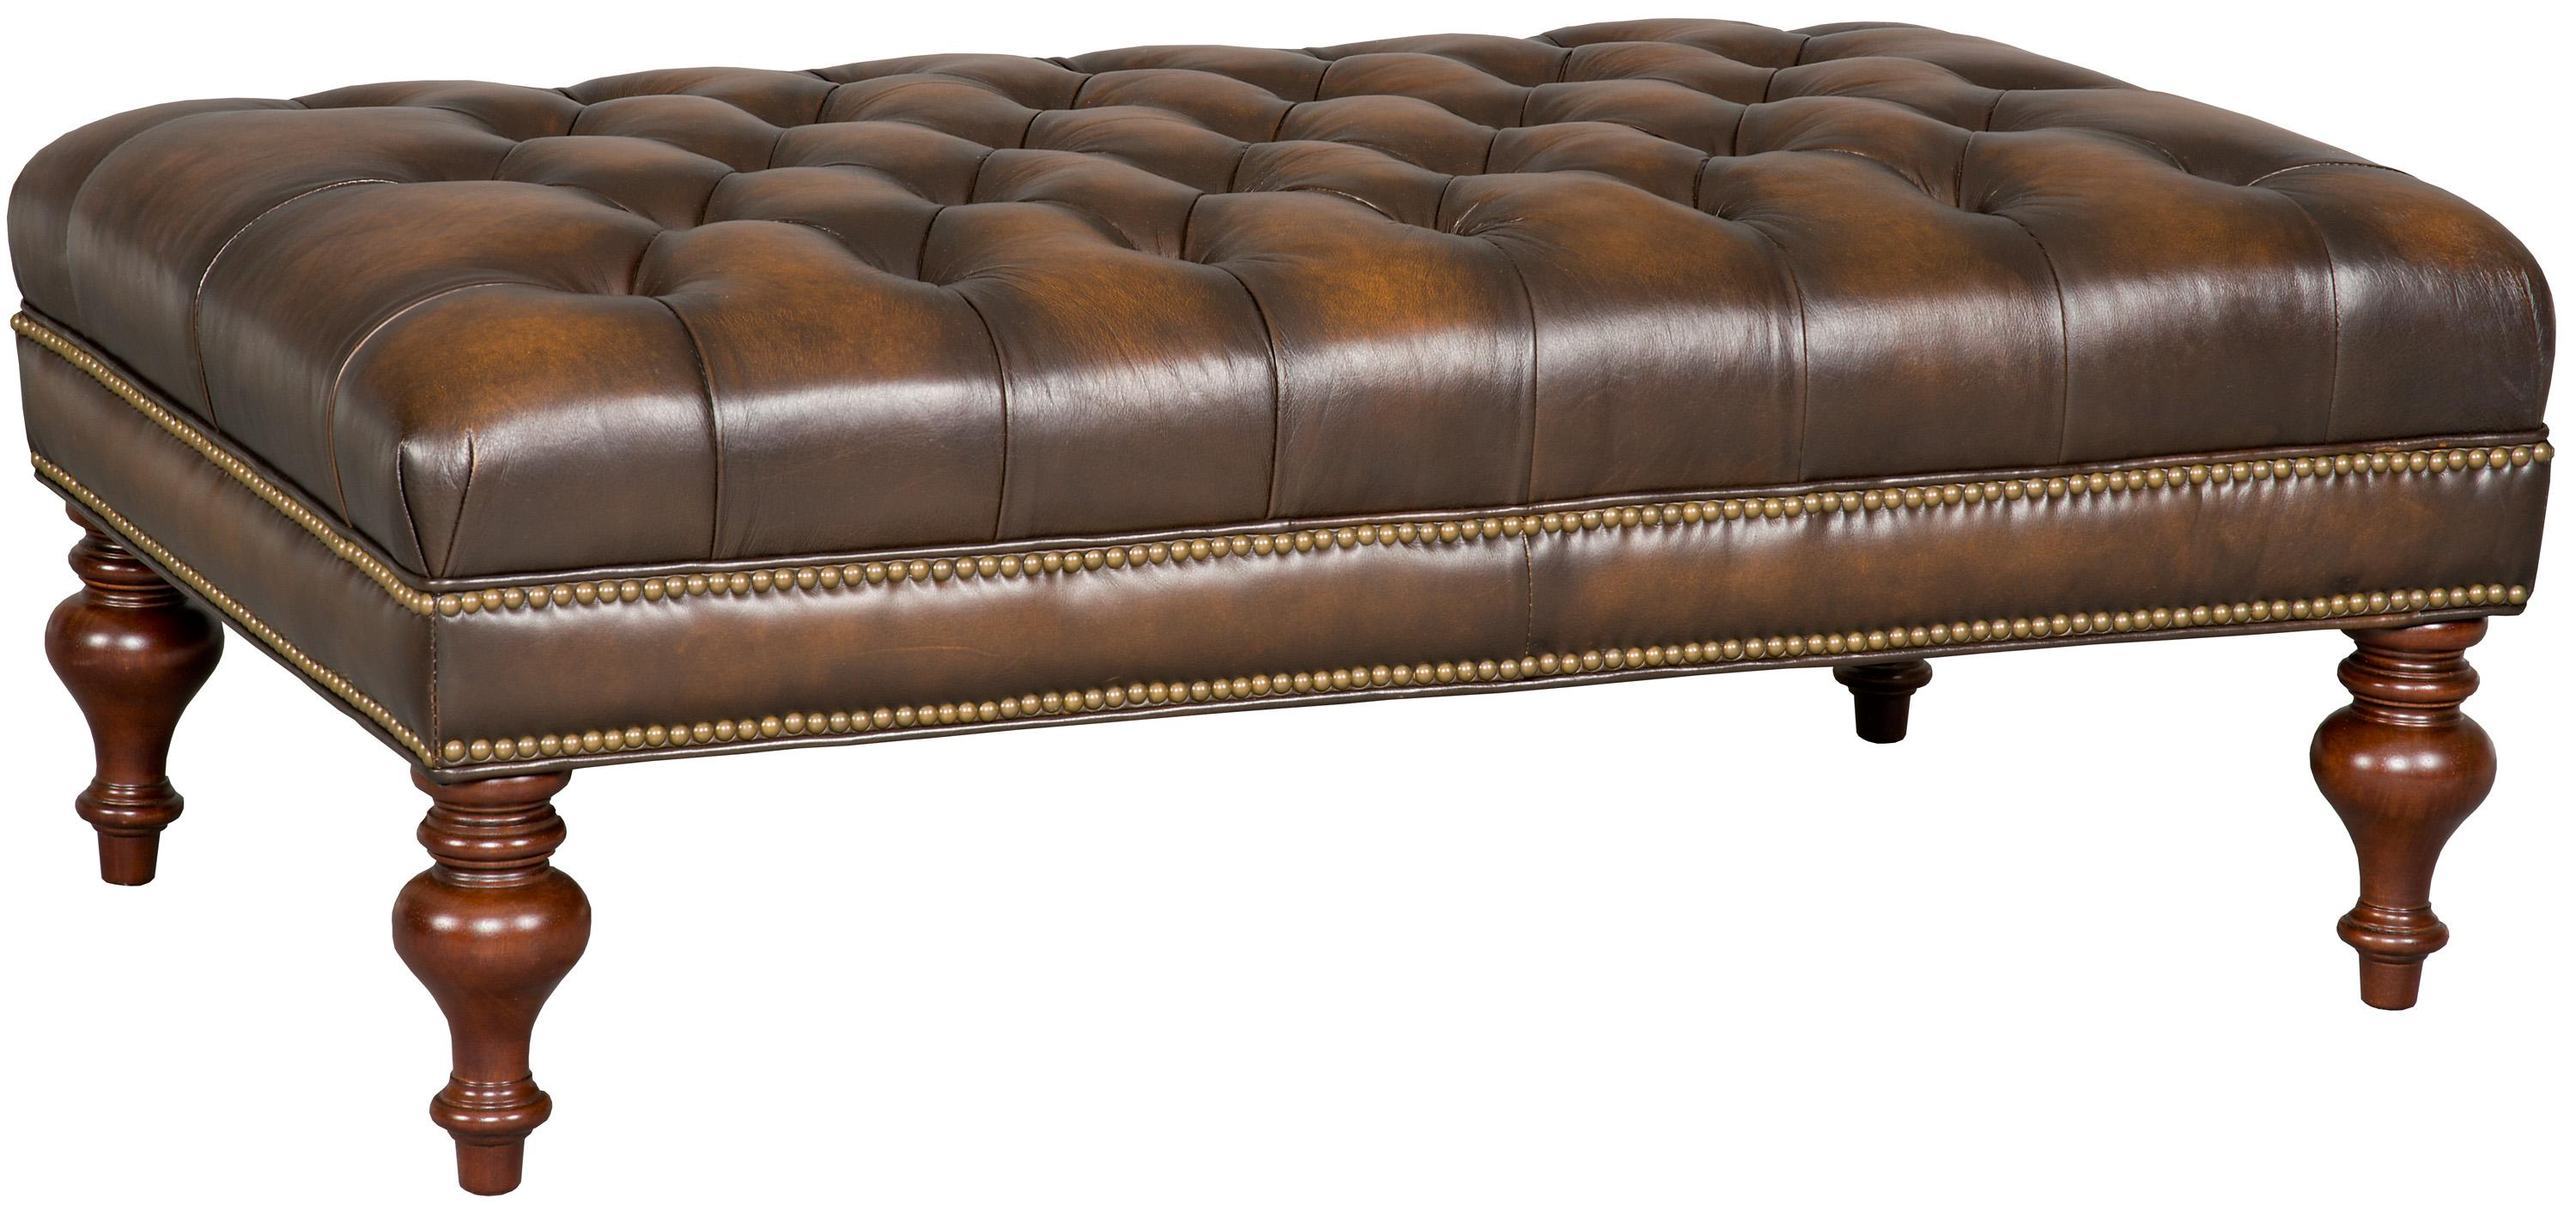 Accent Ottomans Cocktail Ottoman by Hooker Furniture at Miller Waldrop Furniture and Decor